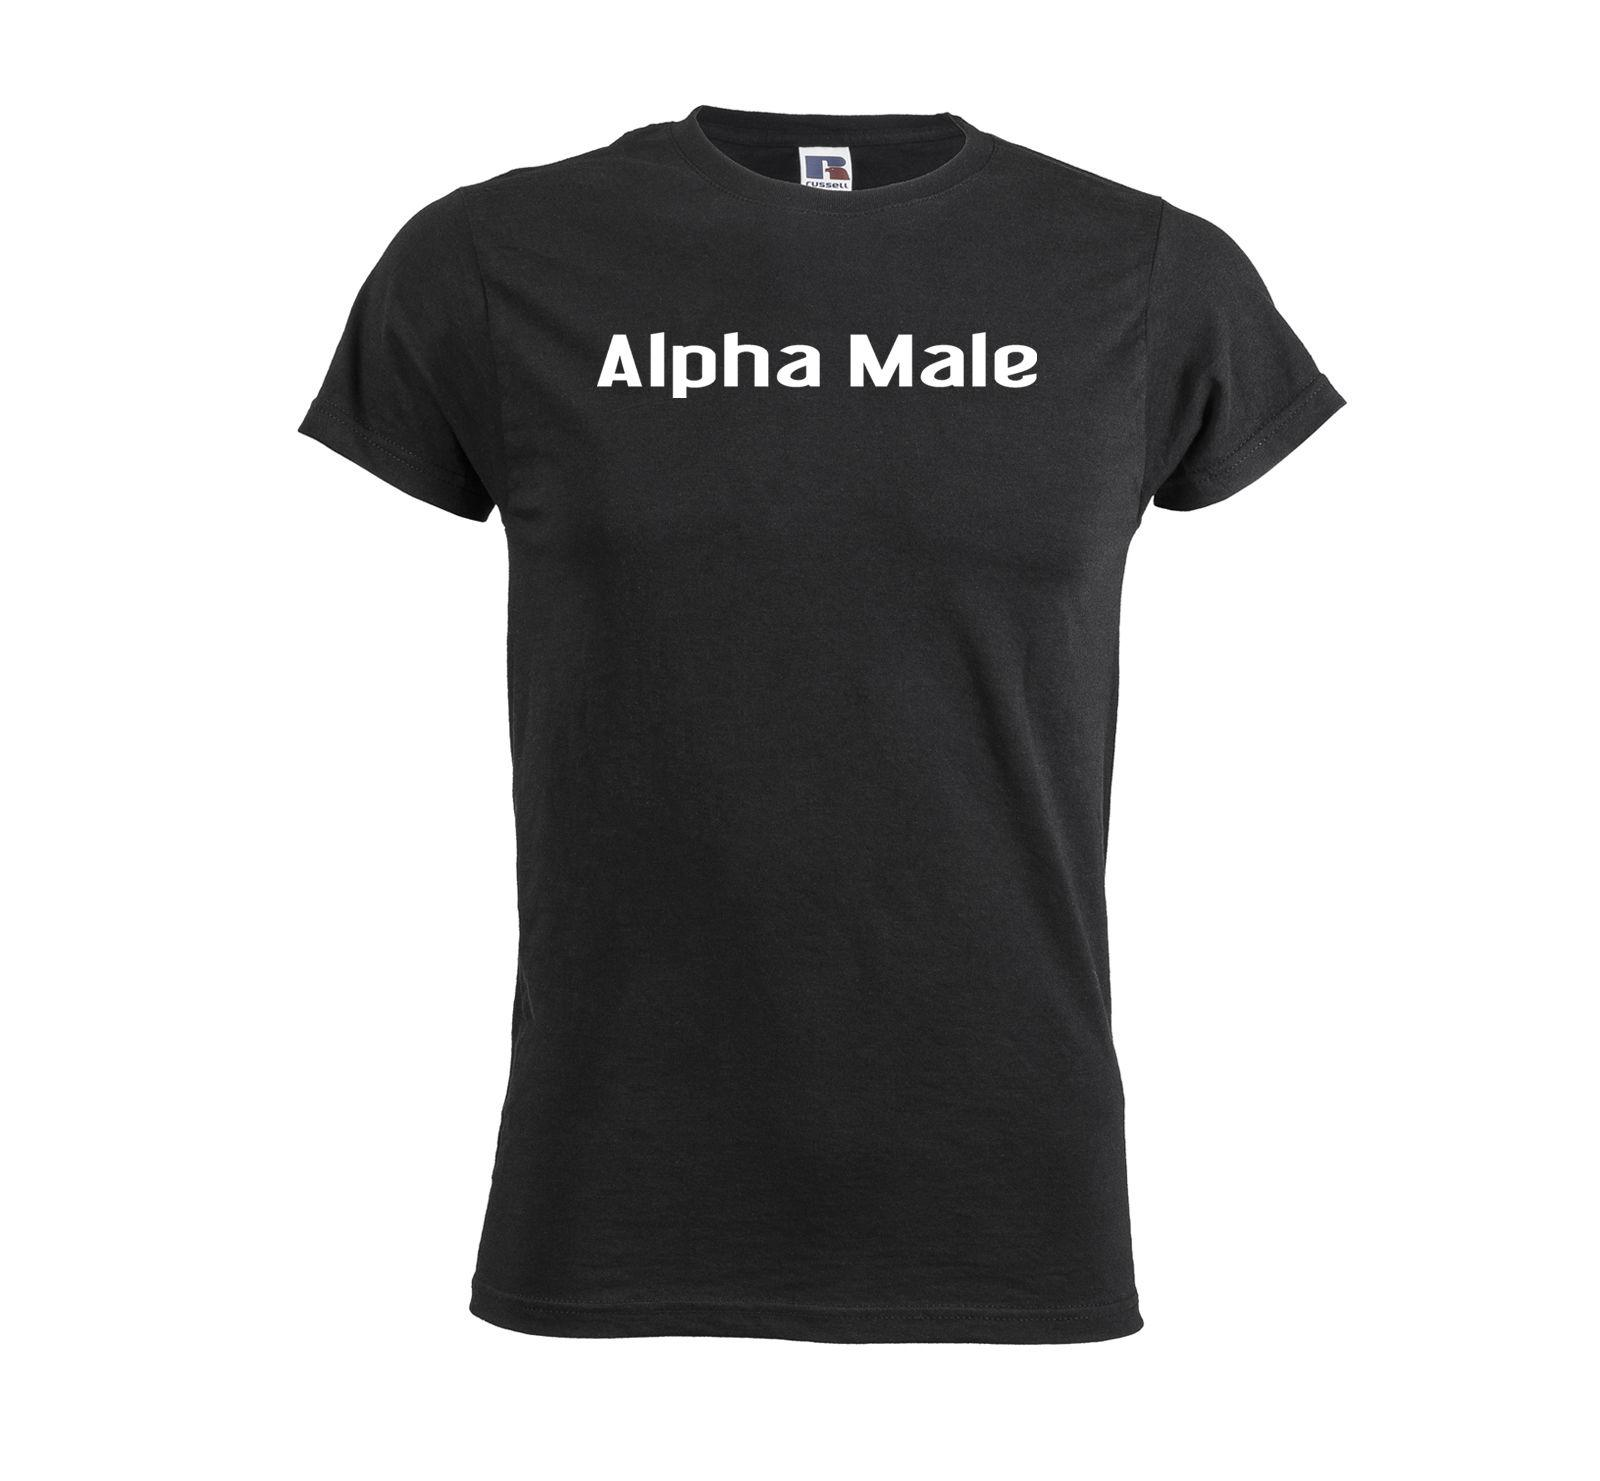 Alpha Male Mens T Shirt Funny Unique Birthday Gift For Him Top Men Outfit Tee 2018 New Short Sleeve Family Buy Funky Shirts Online Ot From